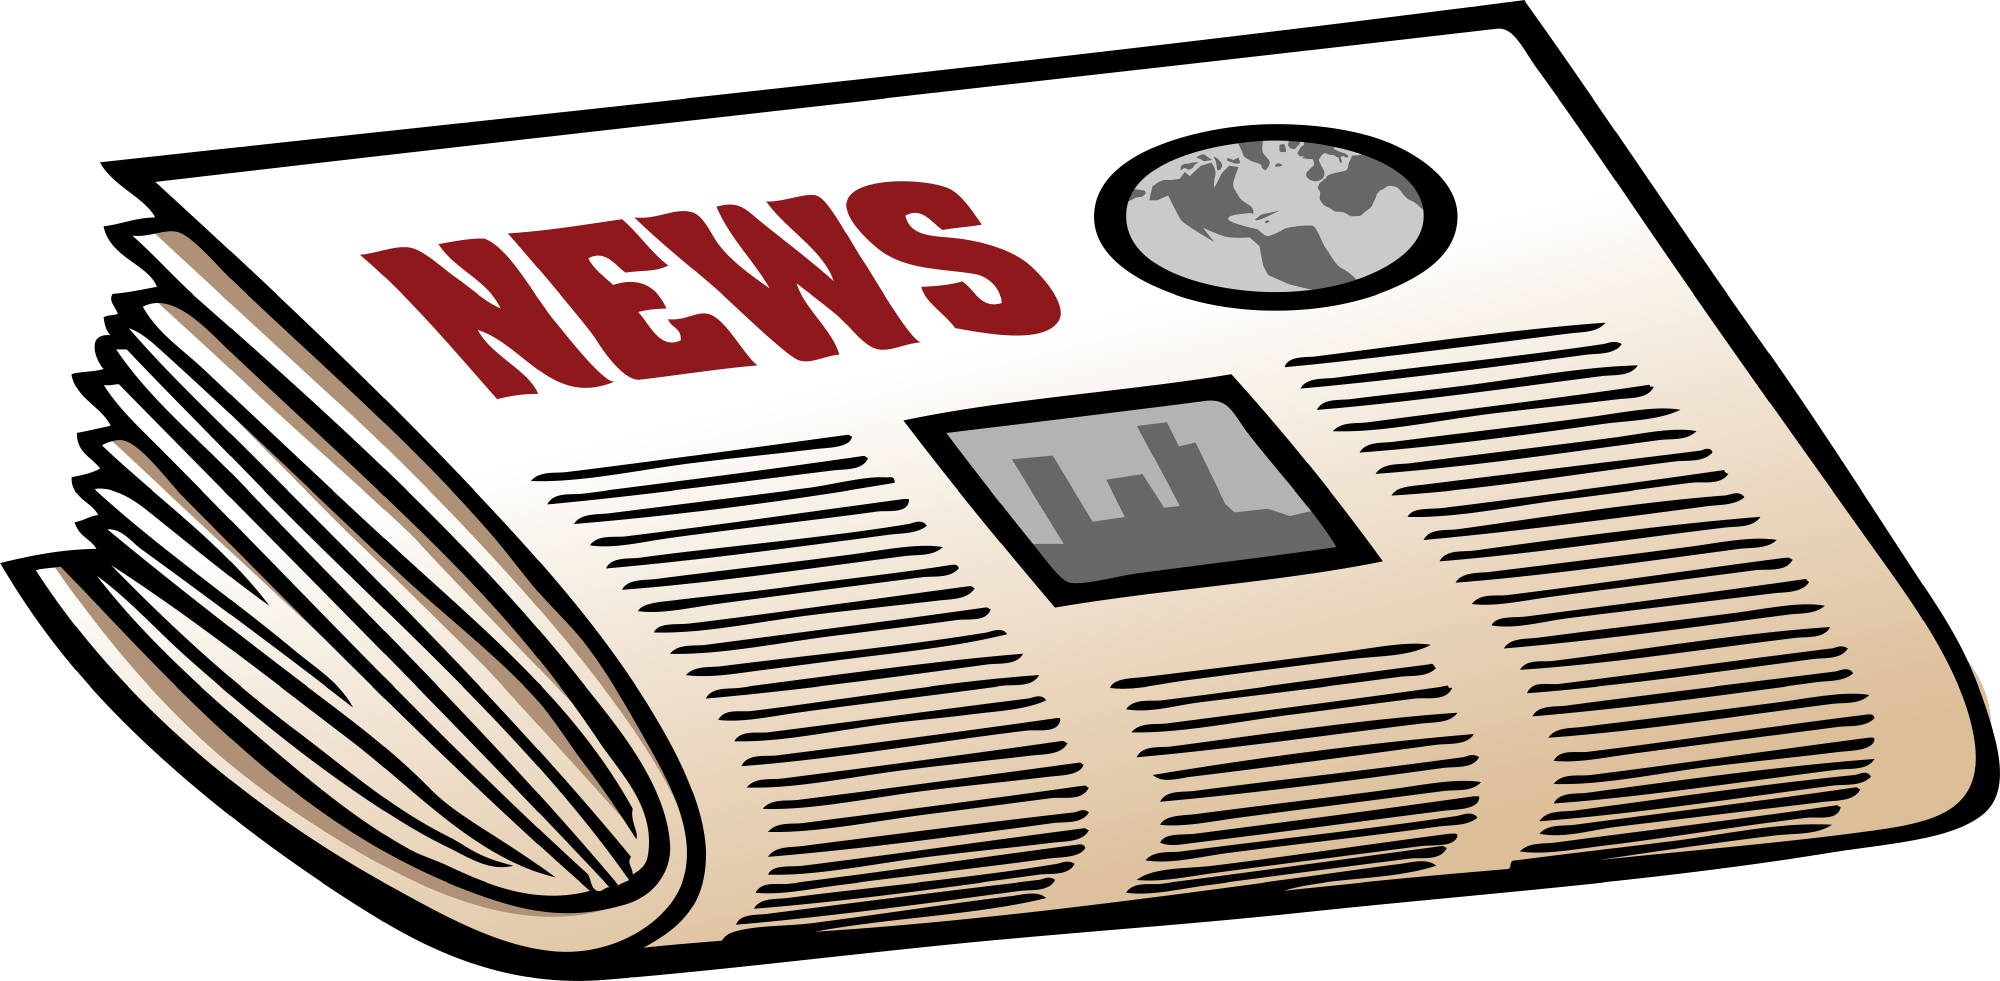 svg royalty free download Newspaper clipart. Bold newspaperclipart.